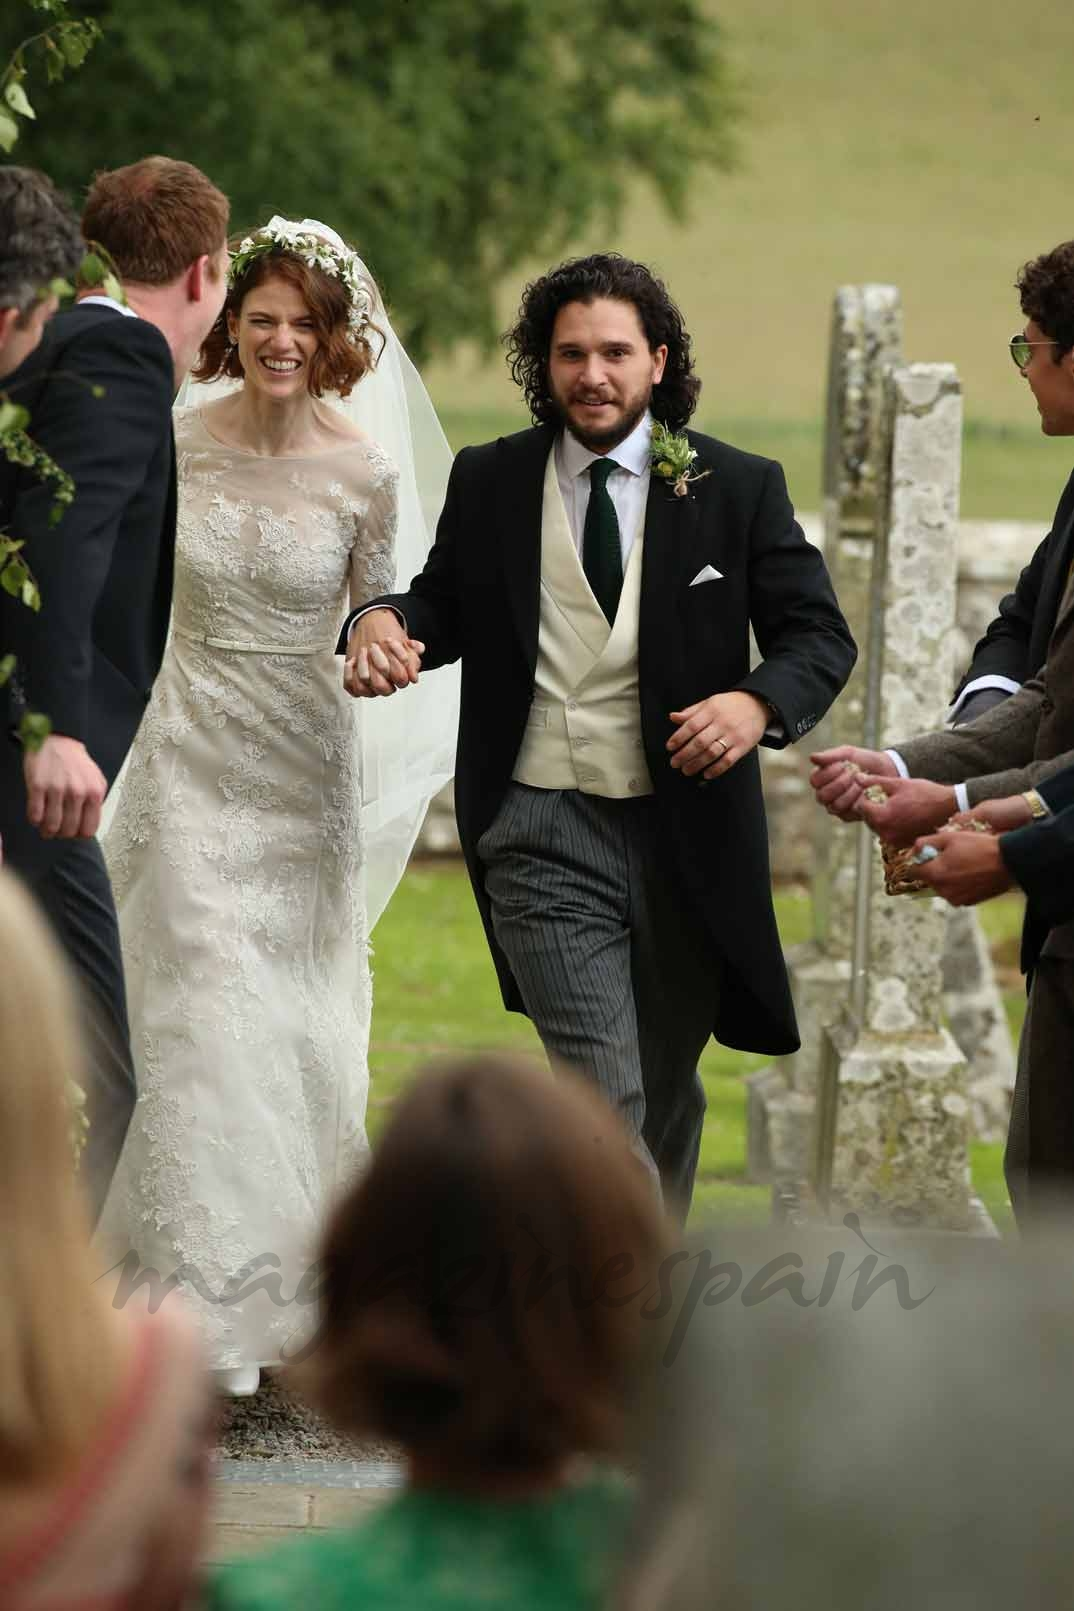 Boda Kit Harington y Rose Leslie (23/6/18)